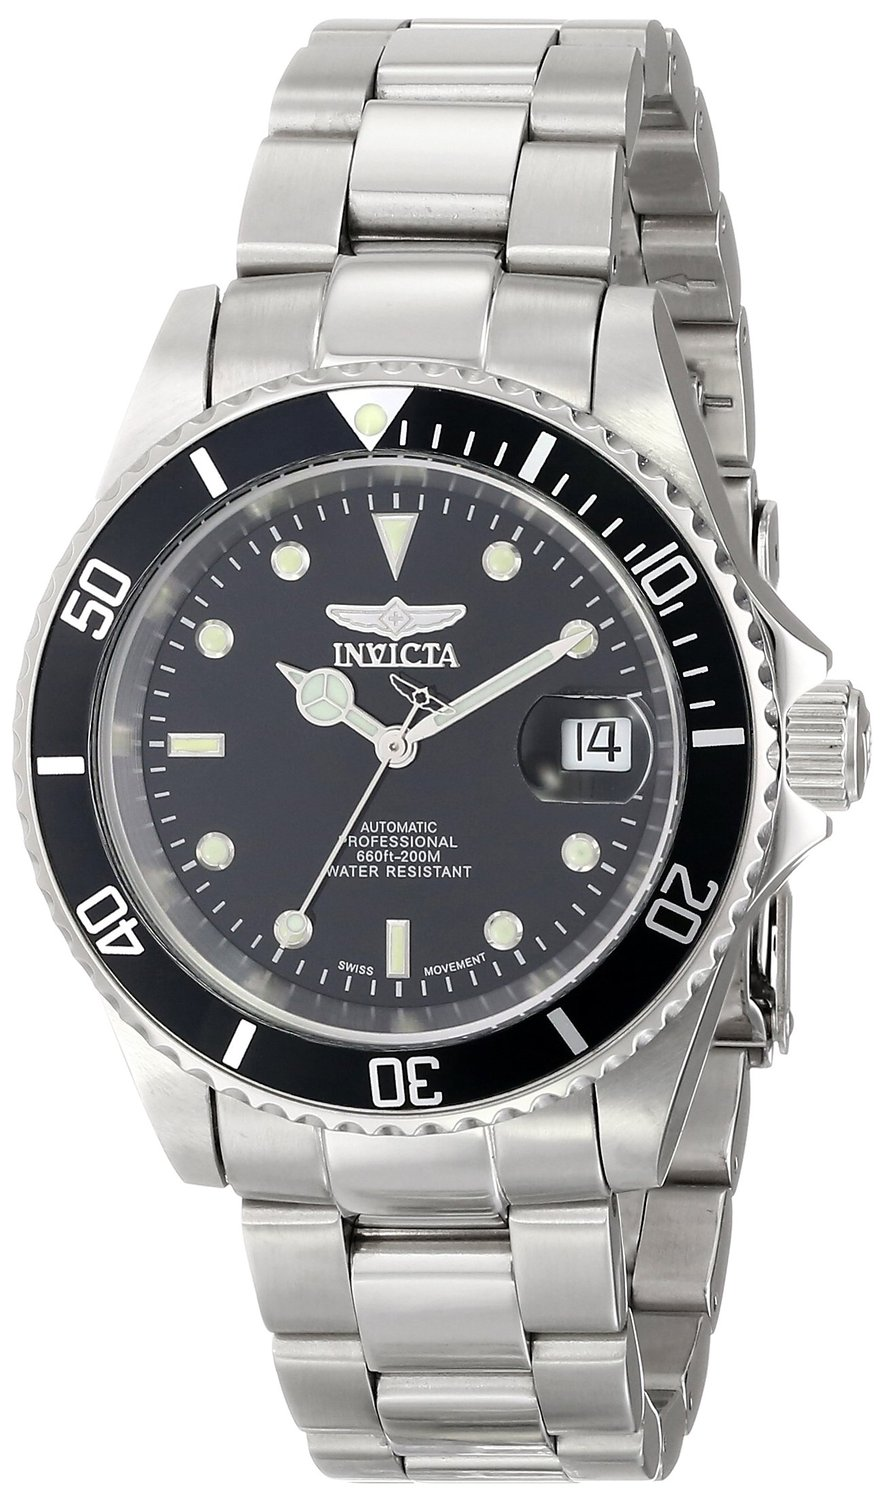 Invicta 9937OB review